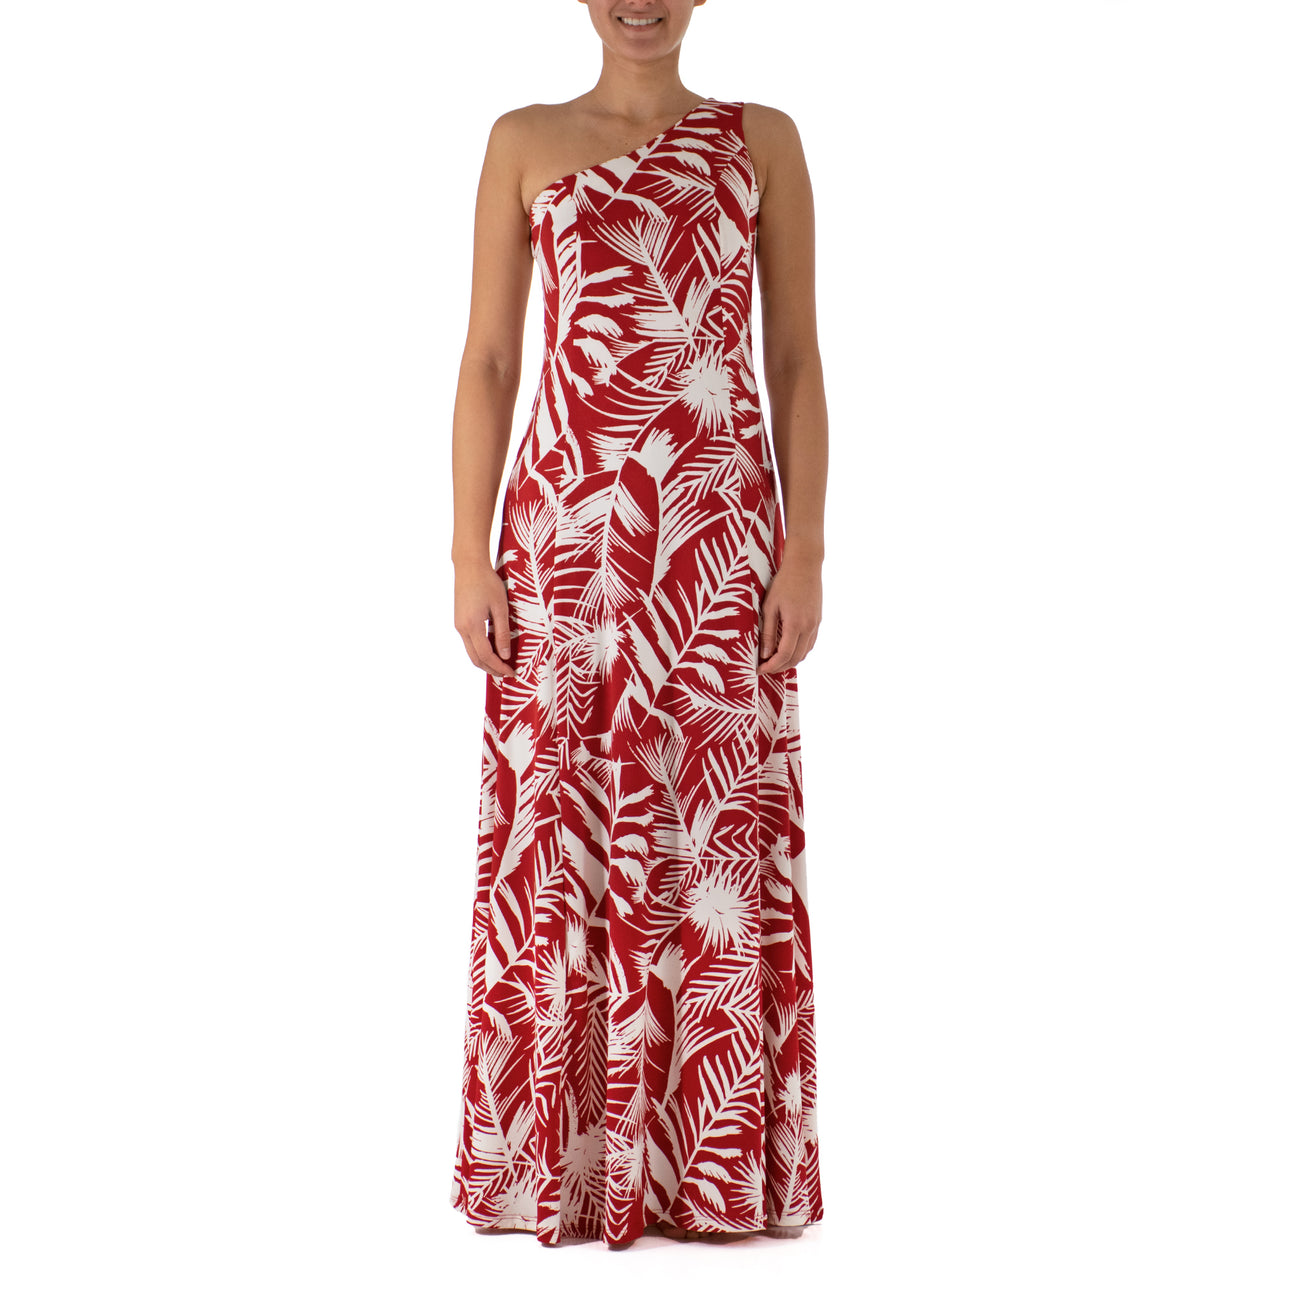 KIANA ONE SHOULDER HULA DRESS